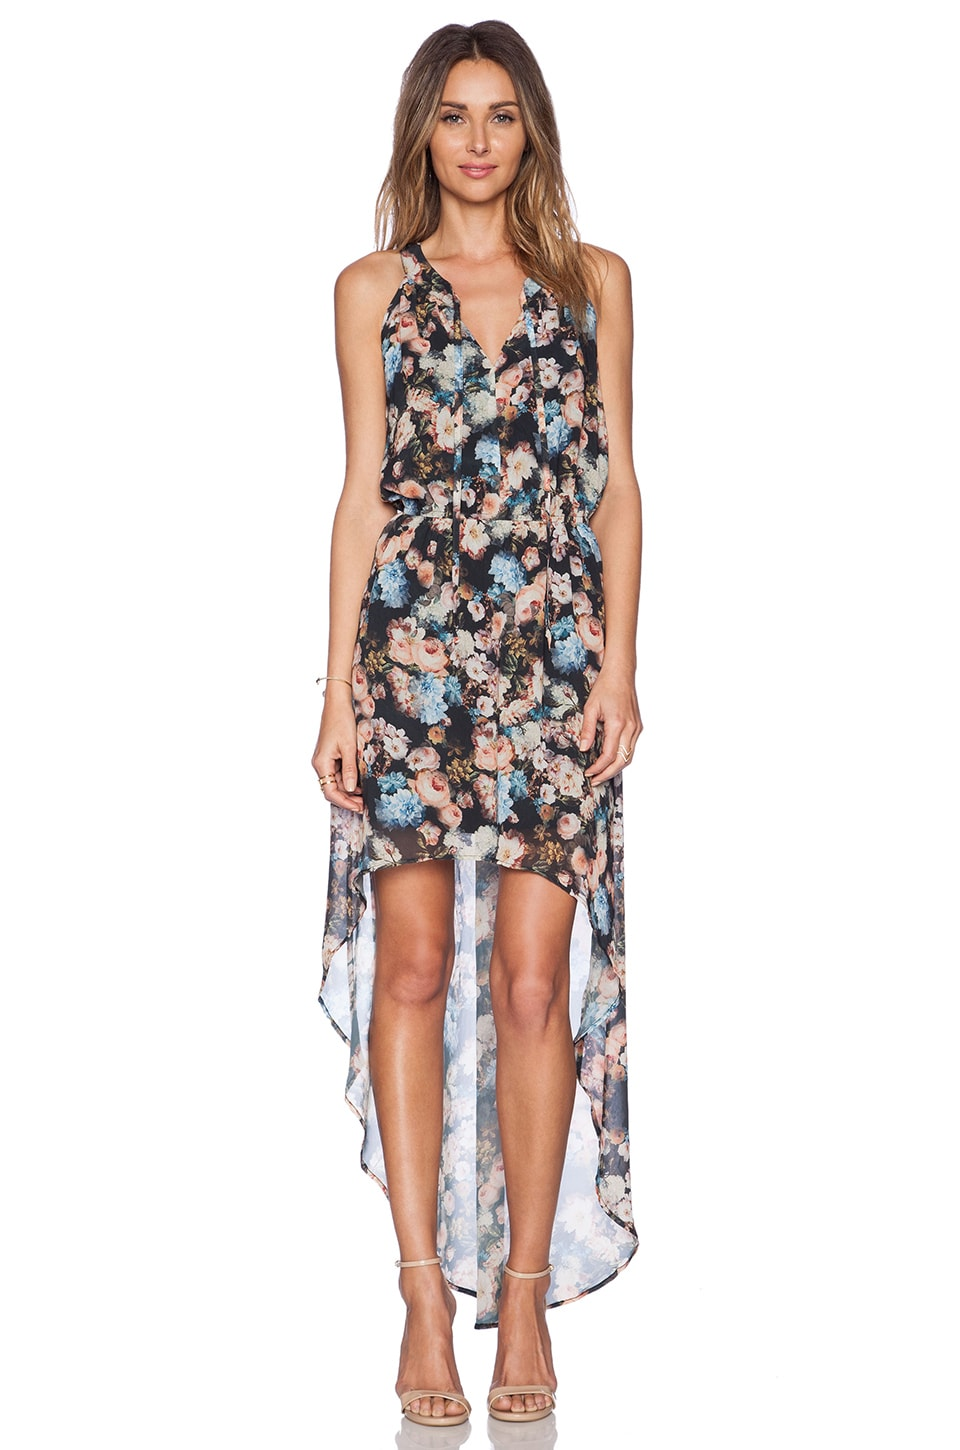 New Friends Colony Floral Hi Lo Dress in Multi